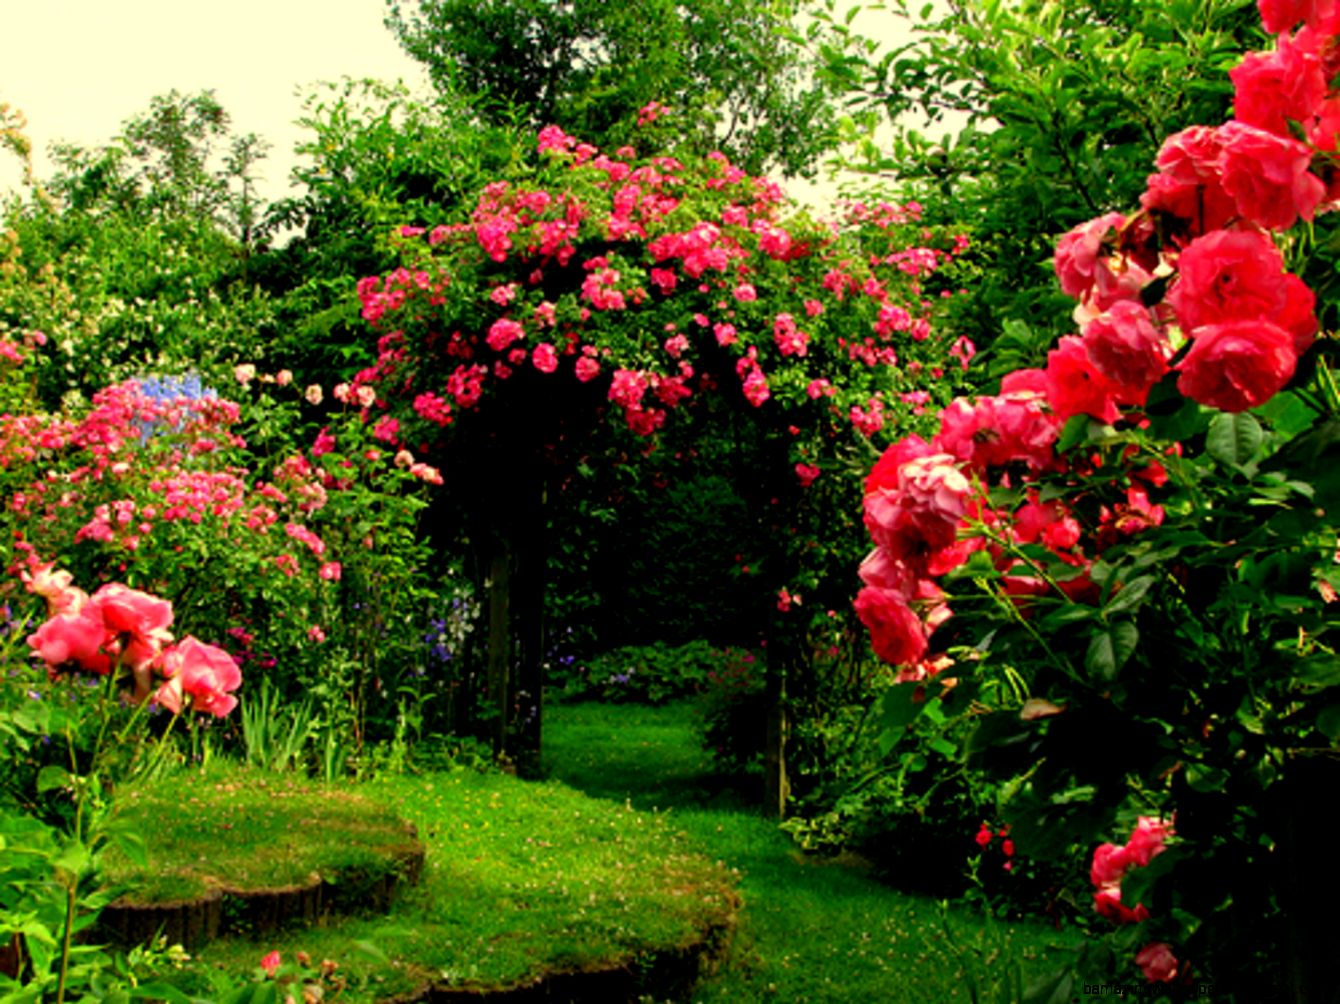 View Original Size Rose Flower Garden Wallpaper Image Source From This